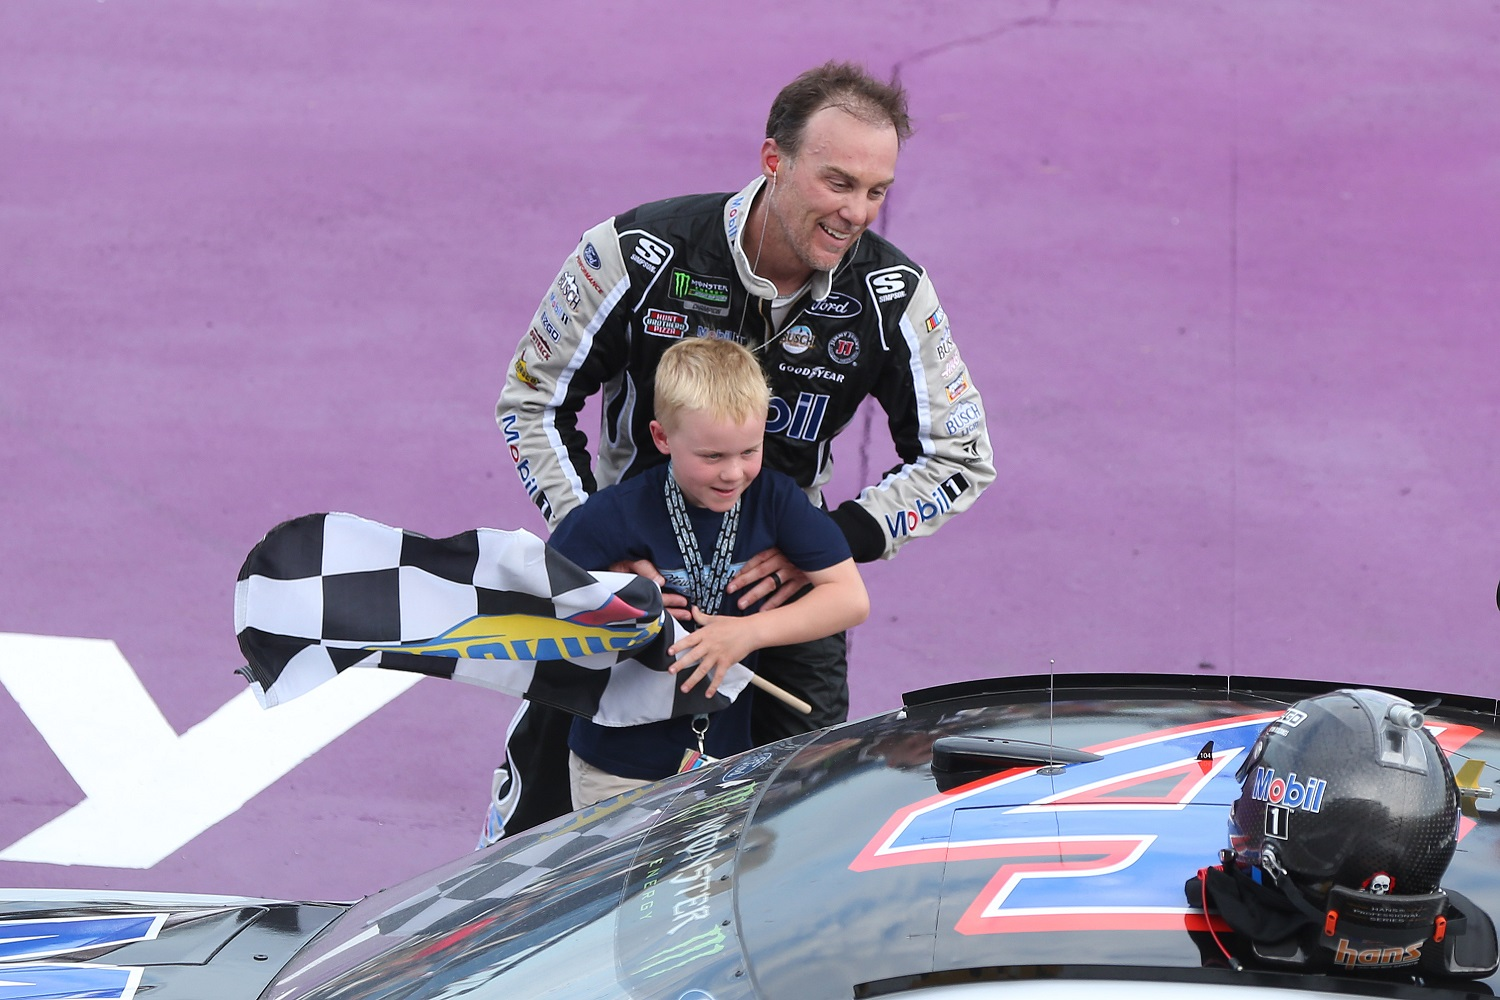 Kevin Harvick helps his son Keelan into the car with the checkered flag after winning the 2019 NASCAR Cup Series Consumers Energy 400 at Michigan International Speedway. | Photo by Matt Sullivan/Getty Images